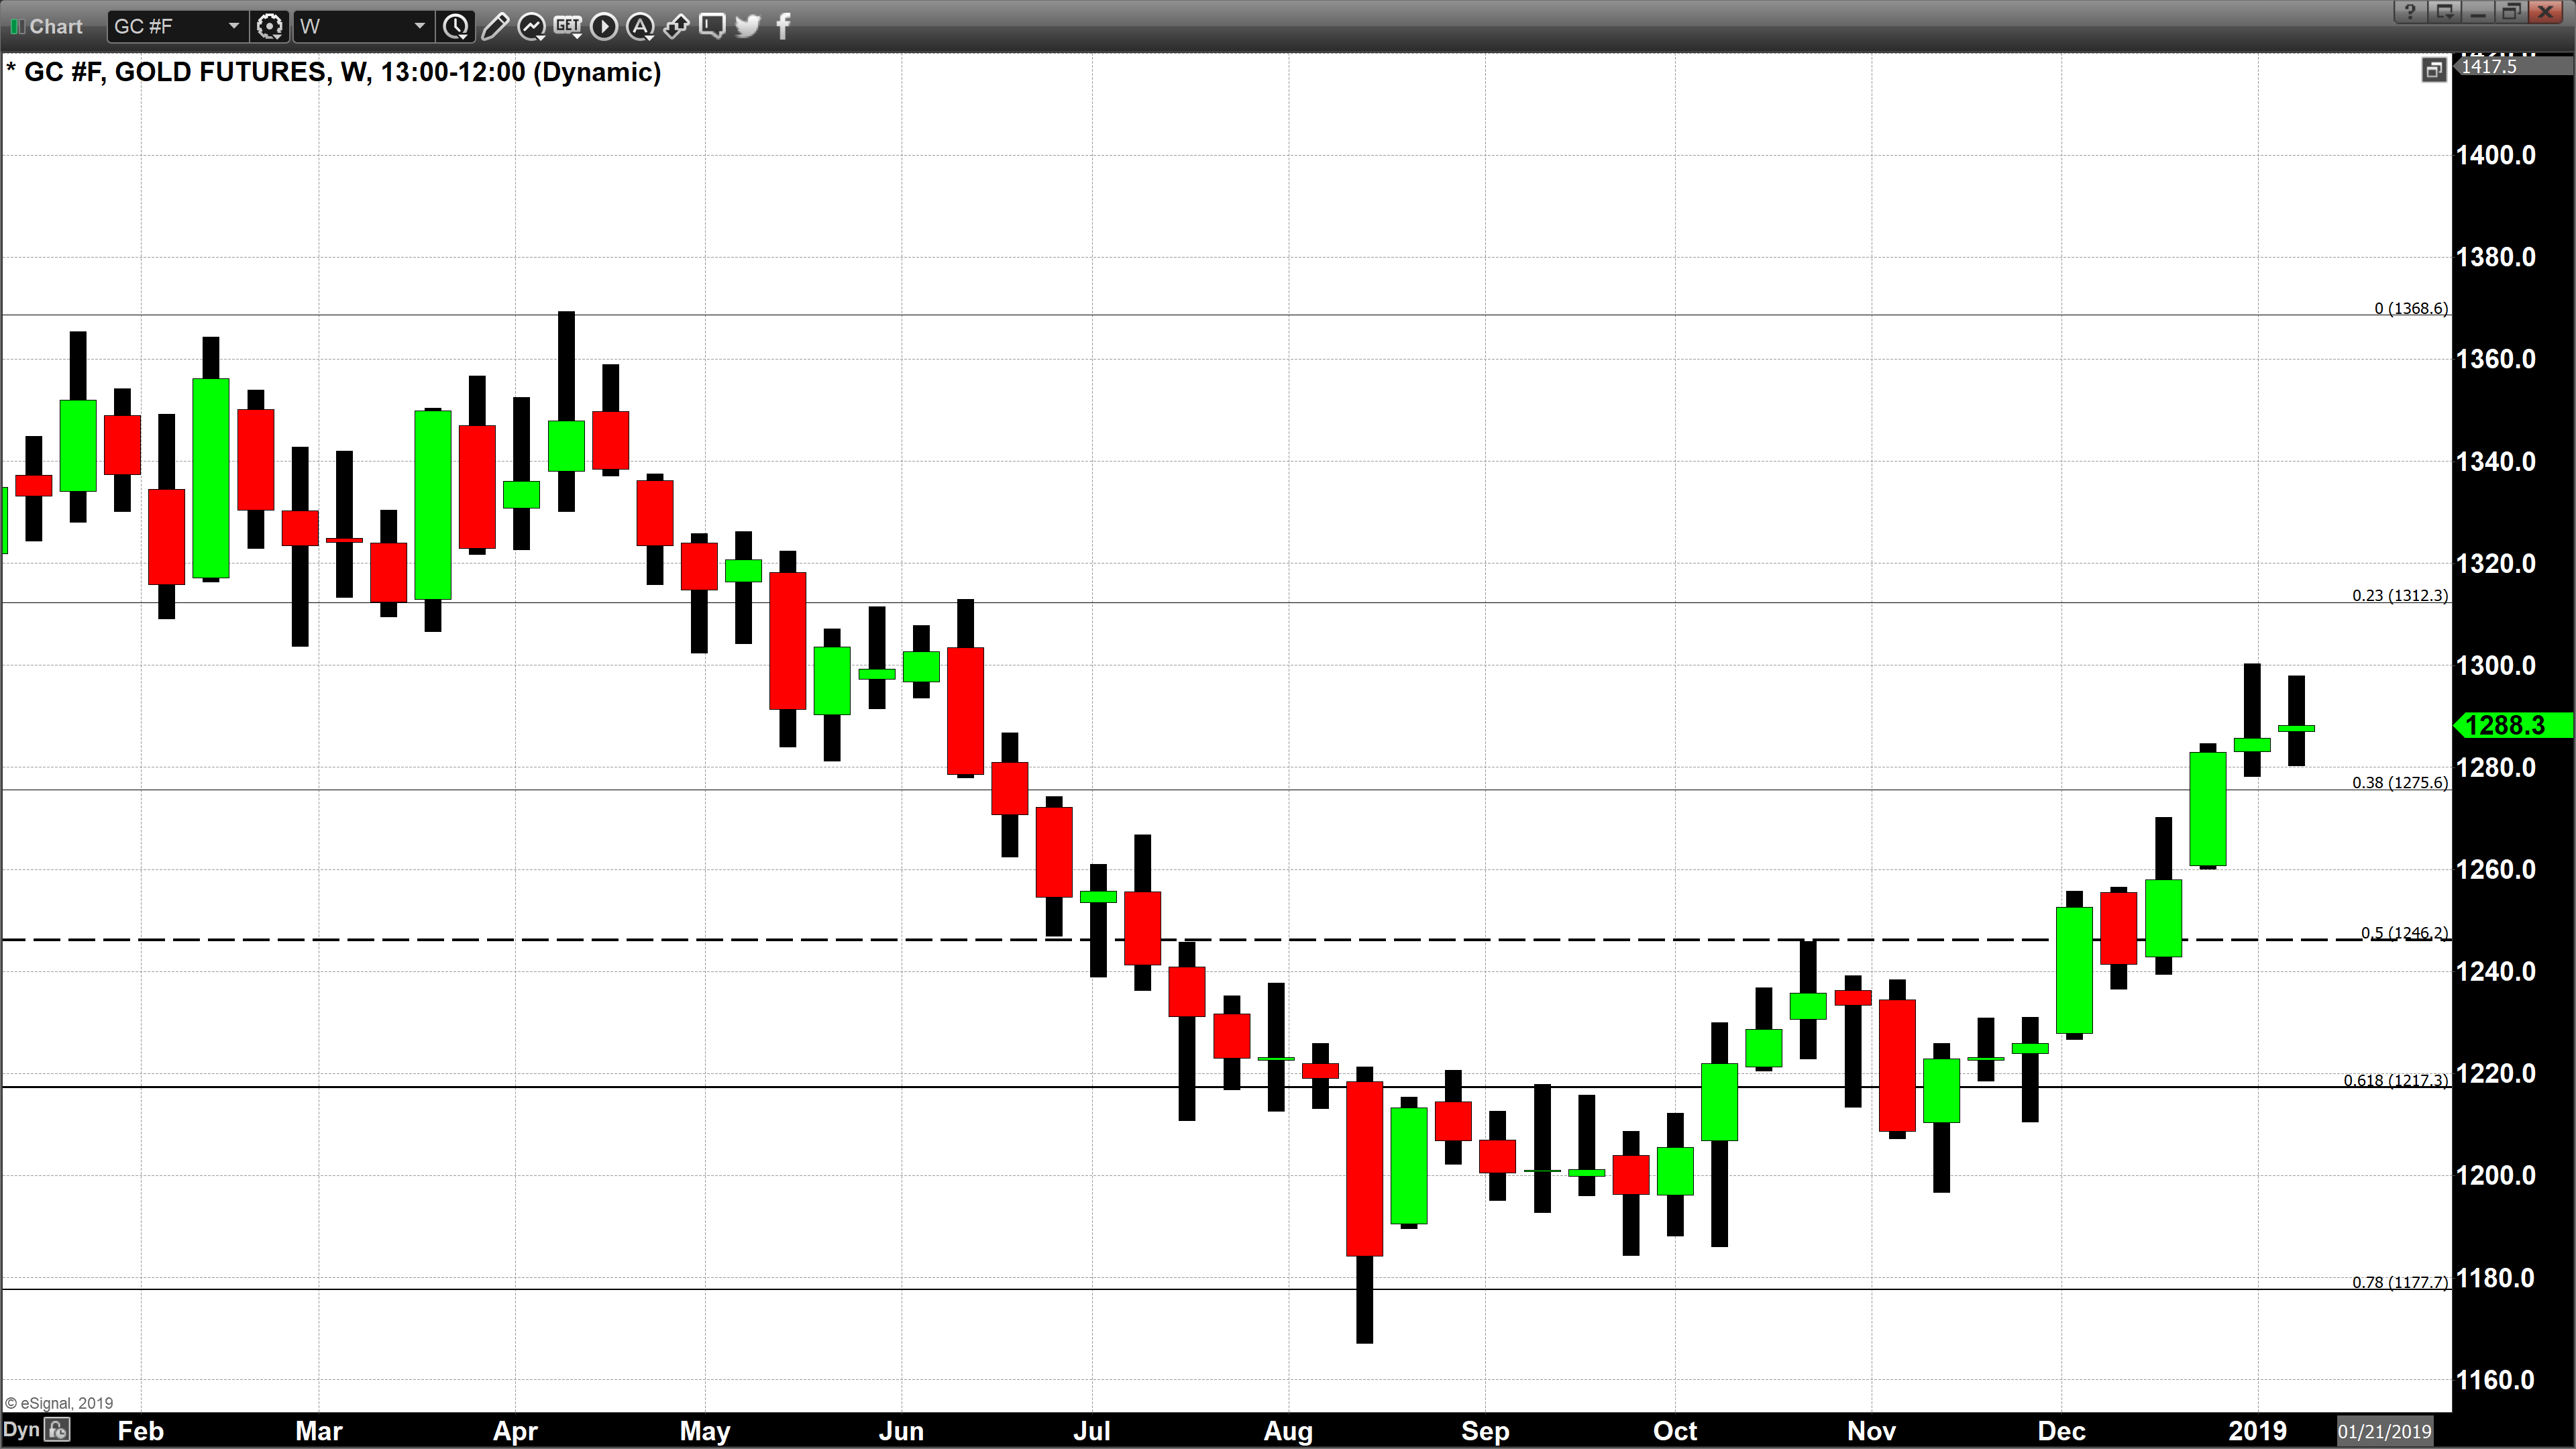 Heiken Ashi Chart Indicate Potential Reversal of the Trend | Kitco News